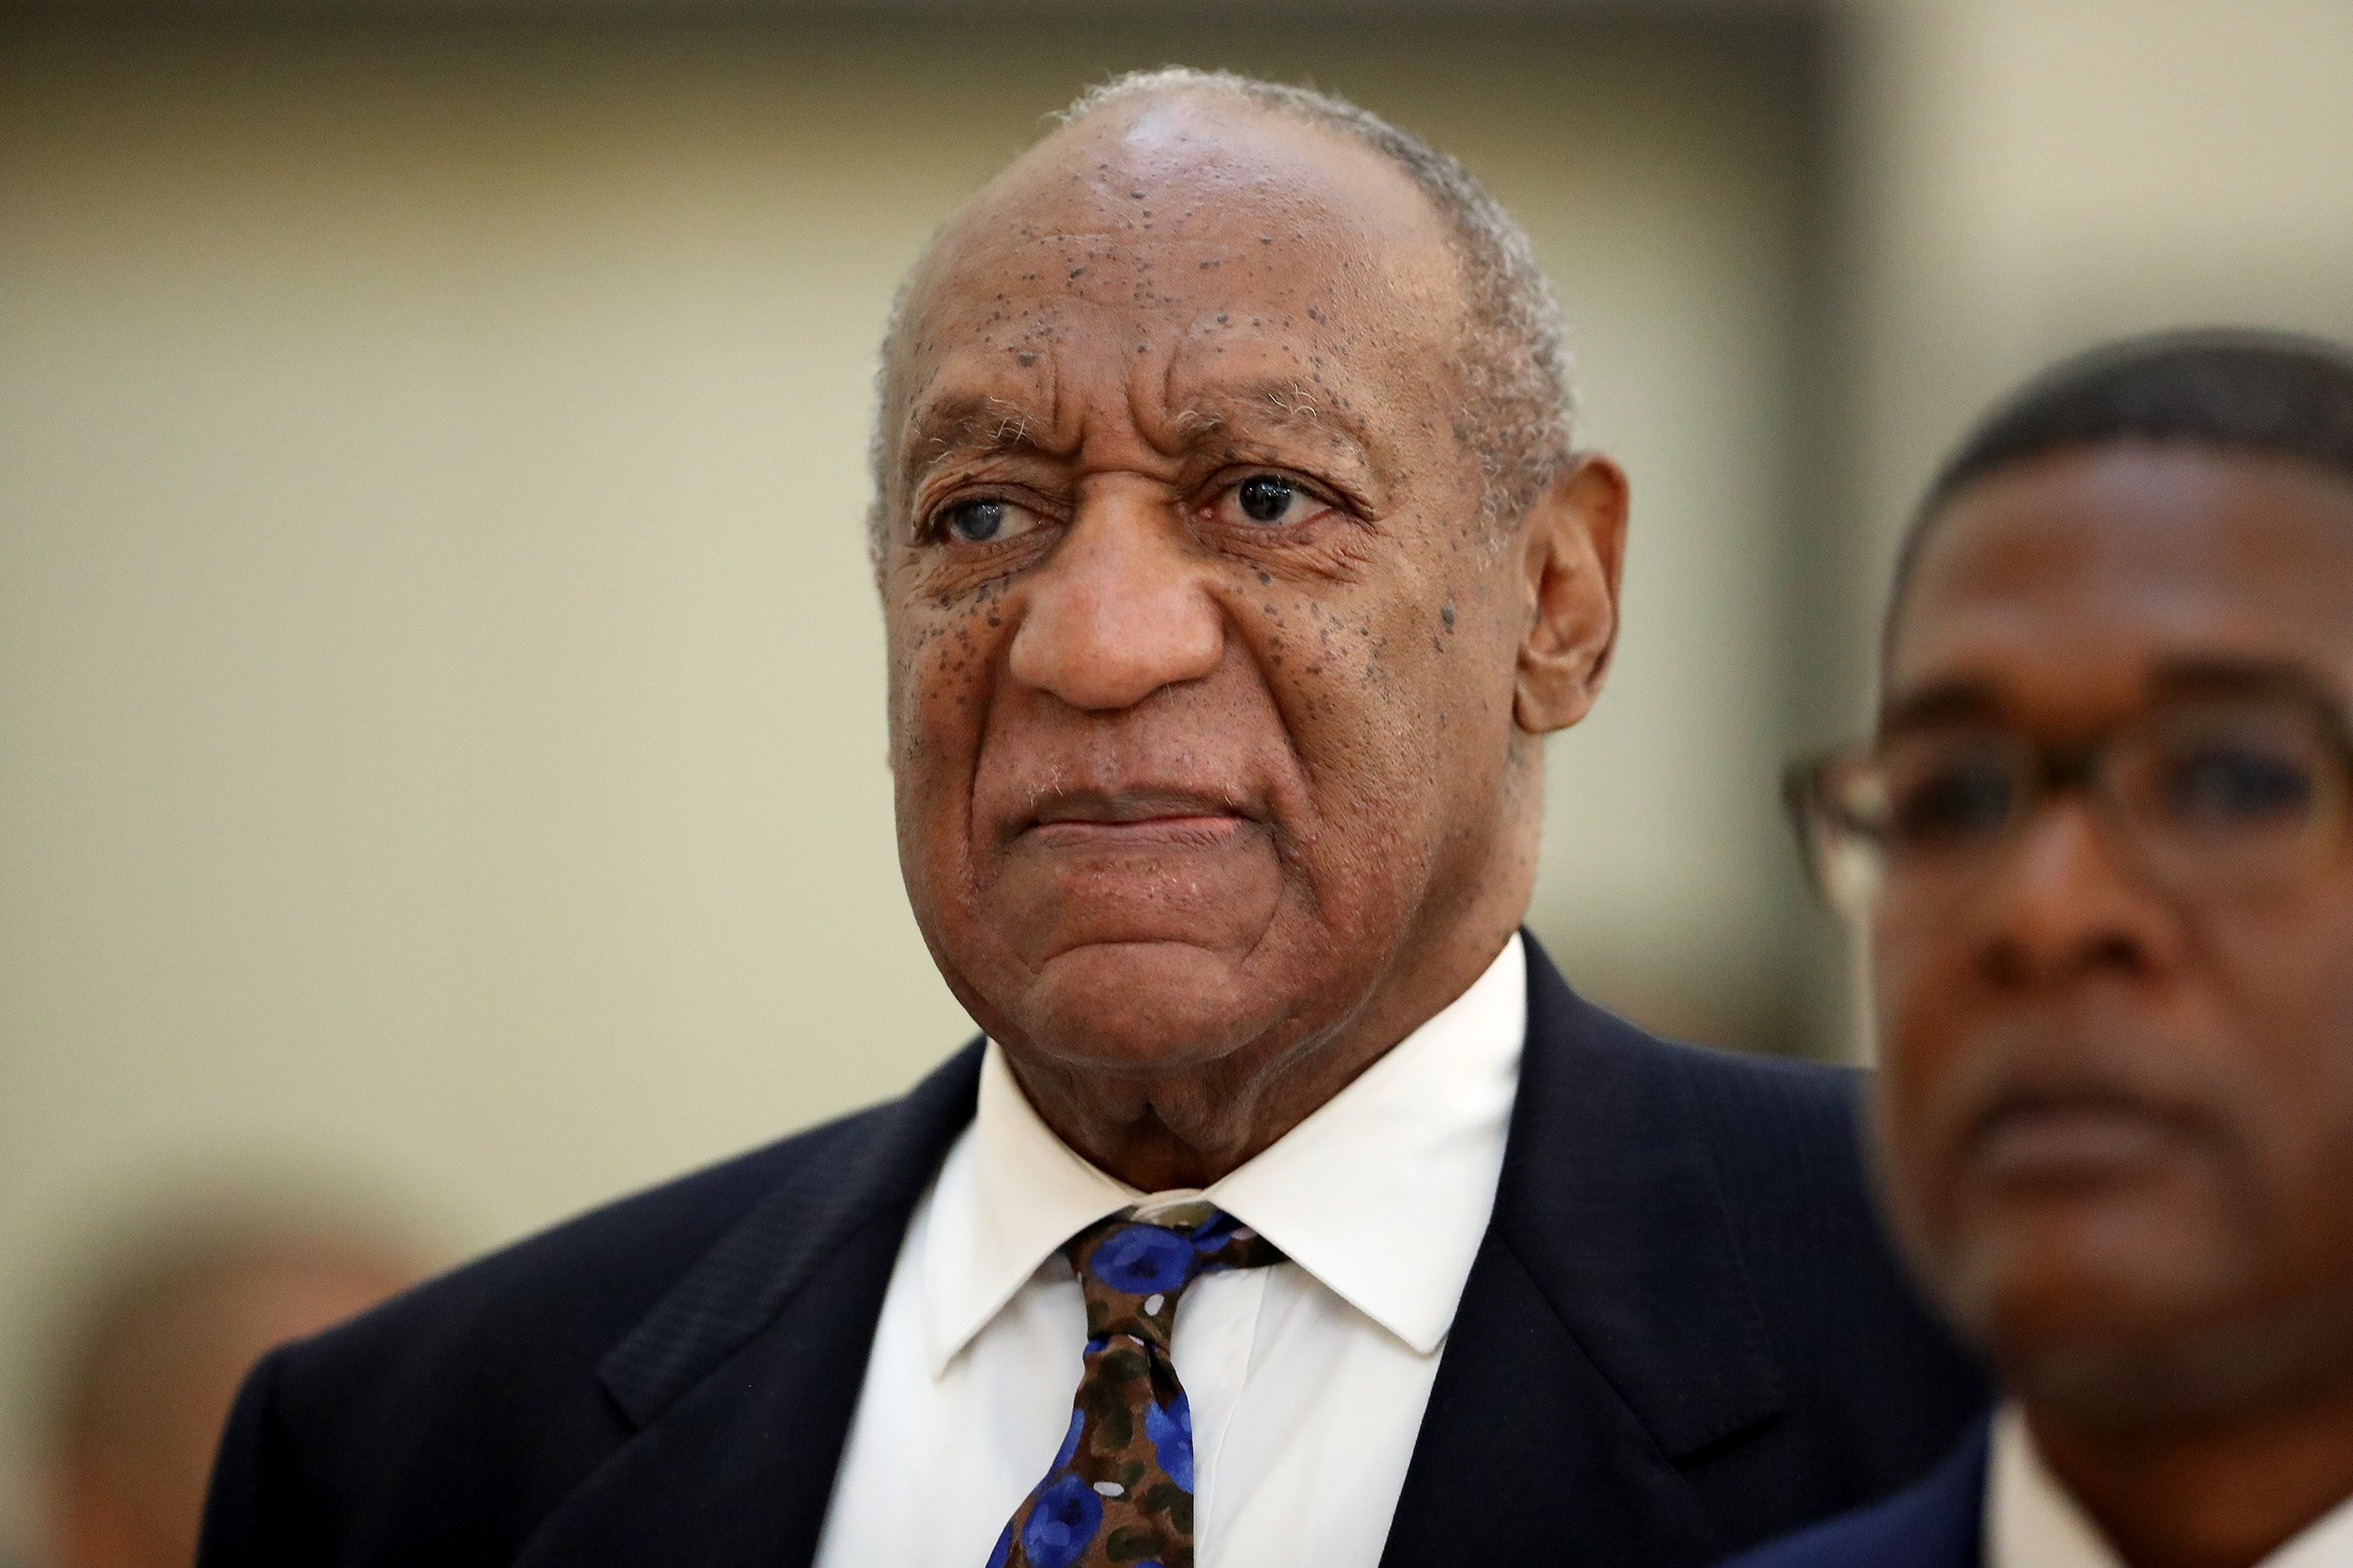 Bill Cosbyat the Montgomery County Courthouse, during his sexual assault trial sentencing in Norristown, Pennsylvania, U.S. September 24, 2018. | Photo: GettyImages